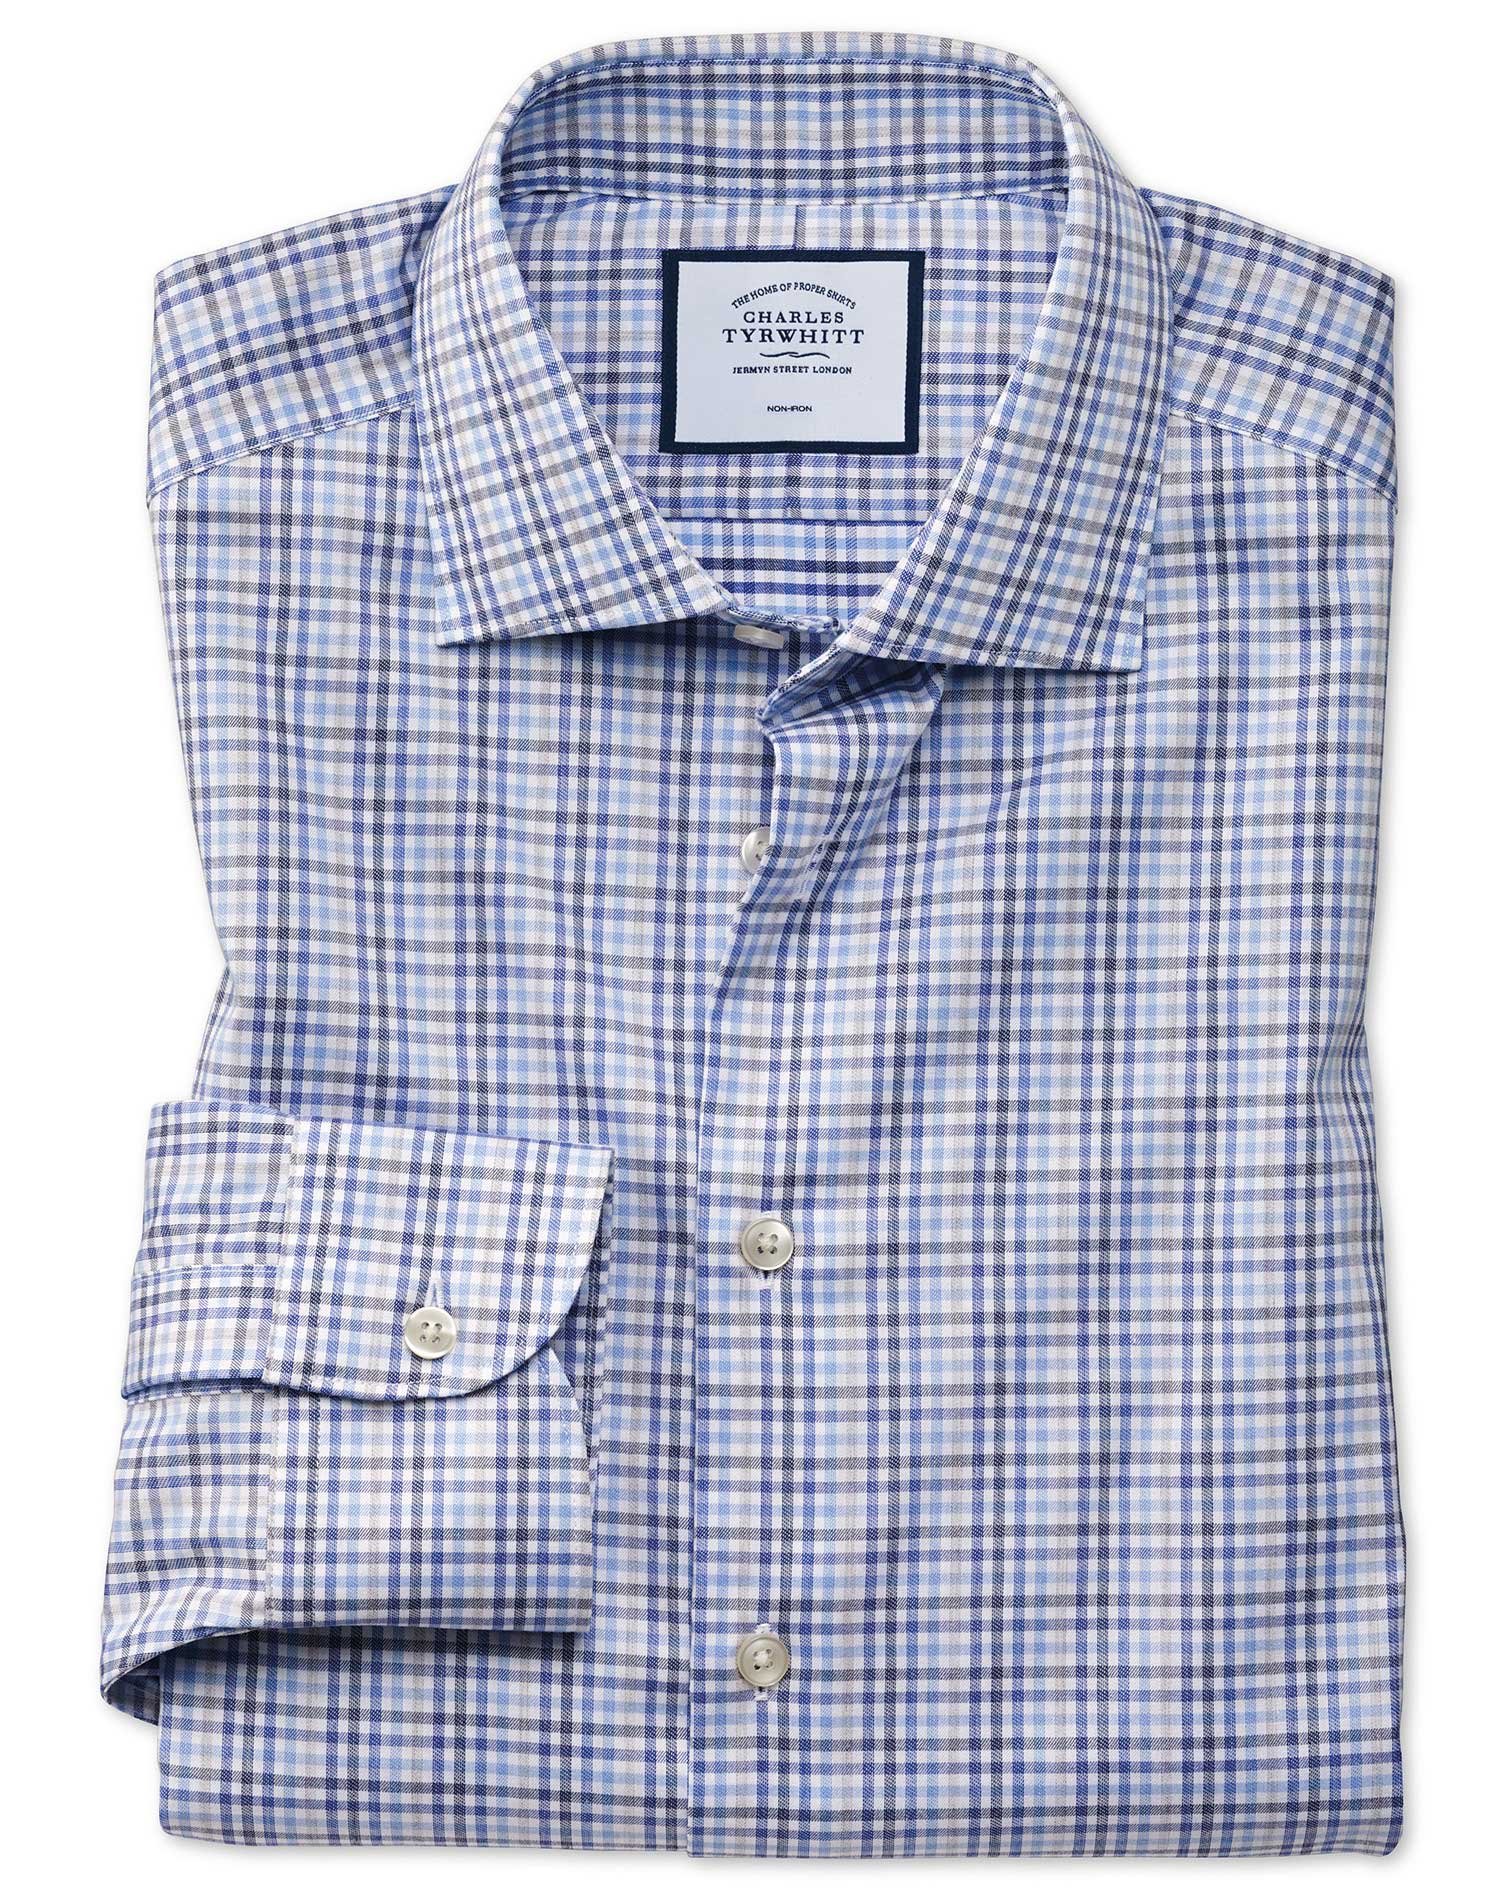 13 days ago· Update: New coupon code as shown xfvpizckltjueoy.cfs Tyrwhitt offers 25% Off Men's Dress Shirts and Casual Shirts when you apply offer code CYBMON. Shipping is free. Thanks couponmit Note, availability/p.